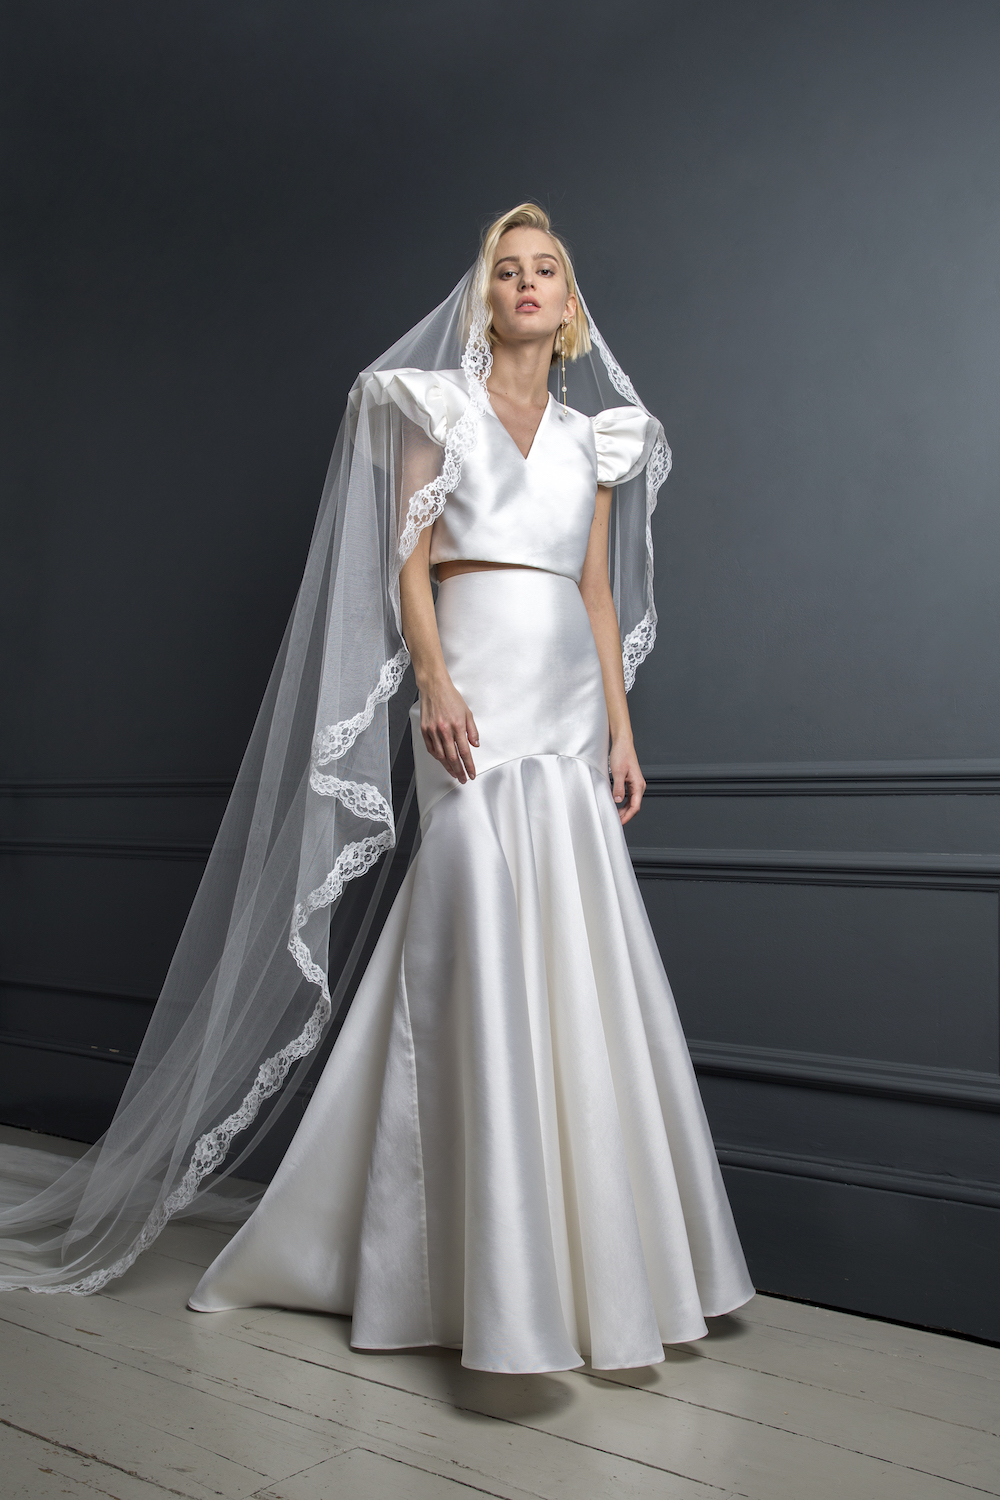 GEORGE TOP & SKIRT STYLED WITH LACE BOARDER VEIL | WEDDING DRESS BY HALFPENNY LONDON